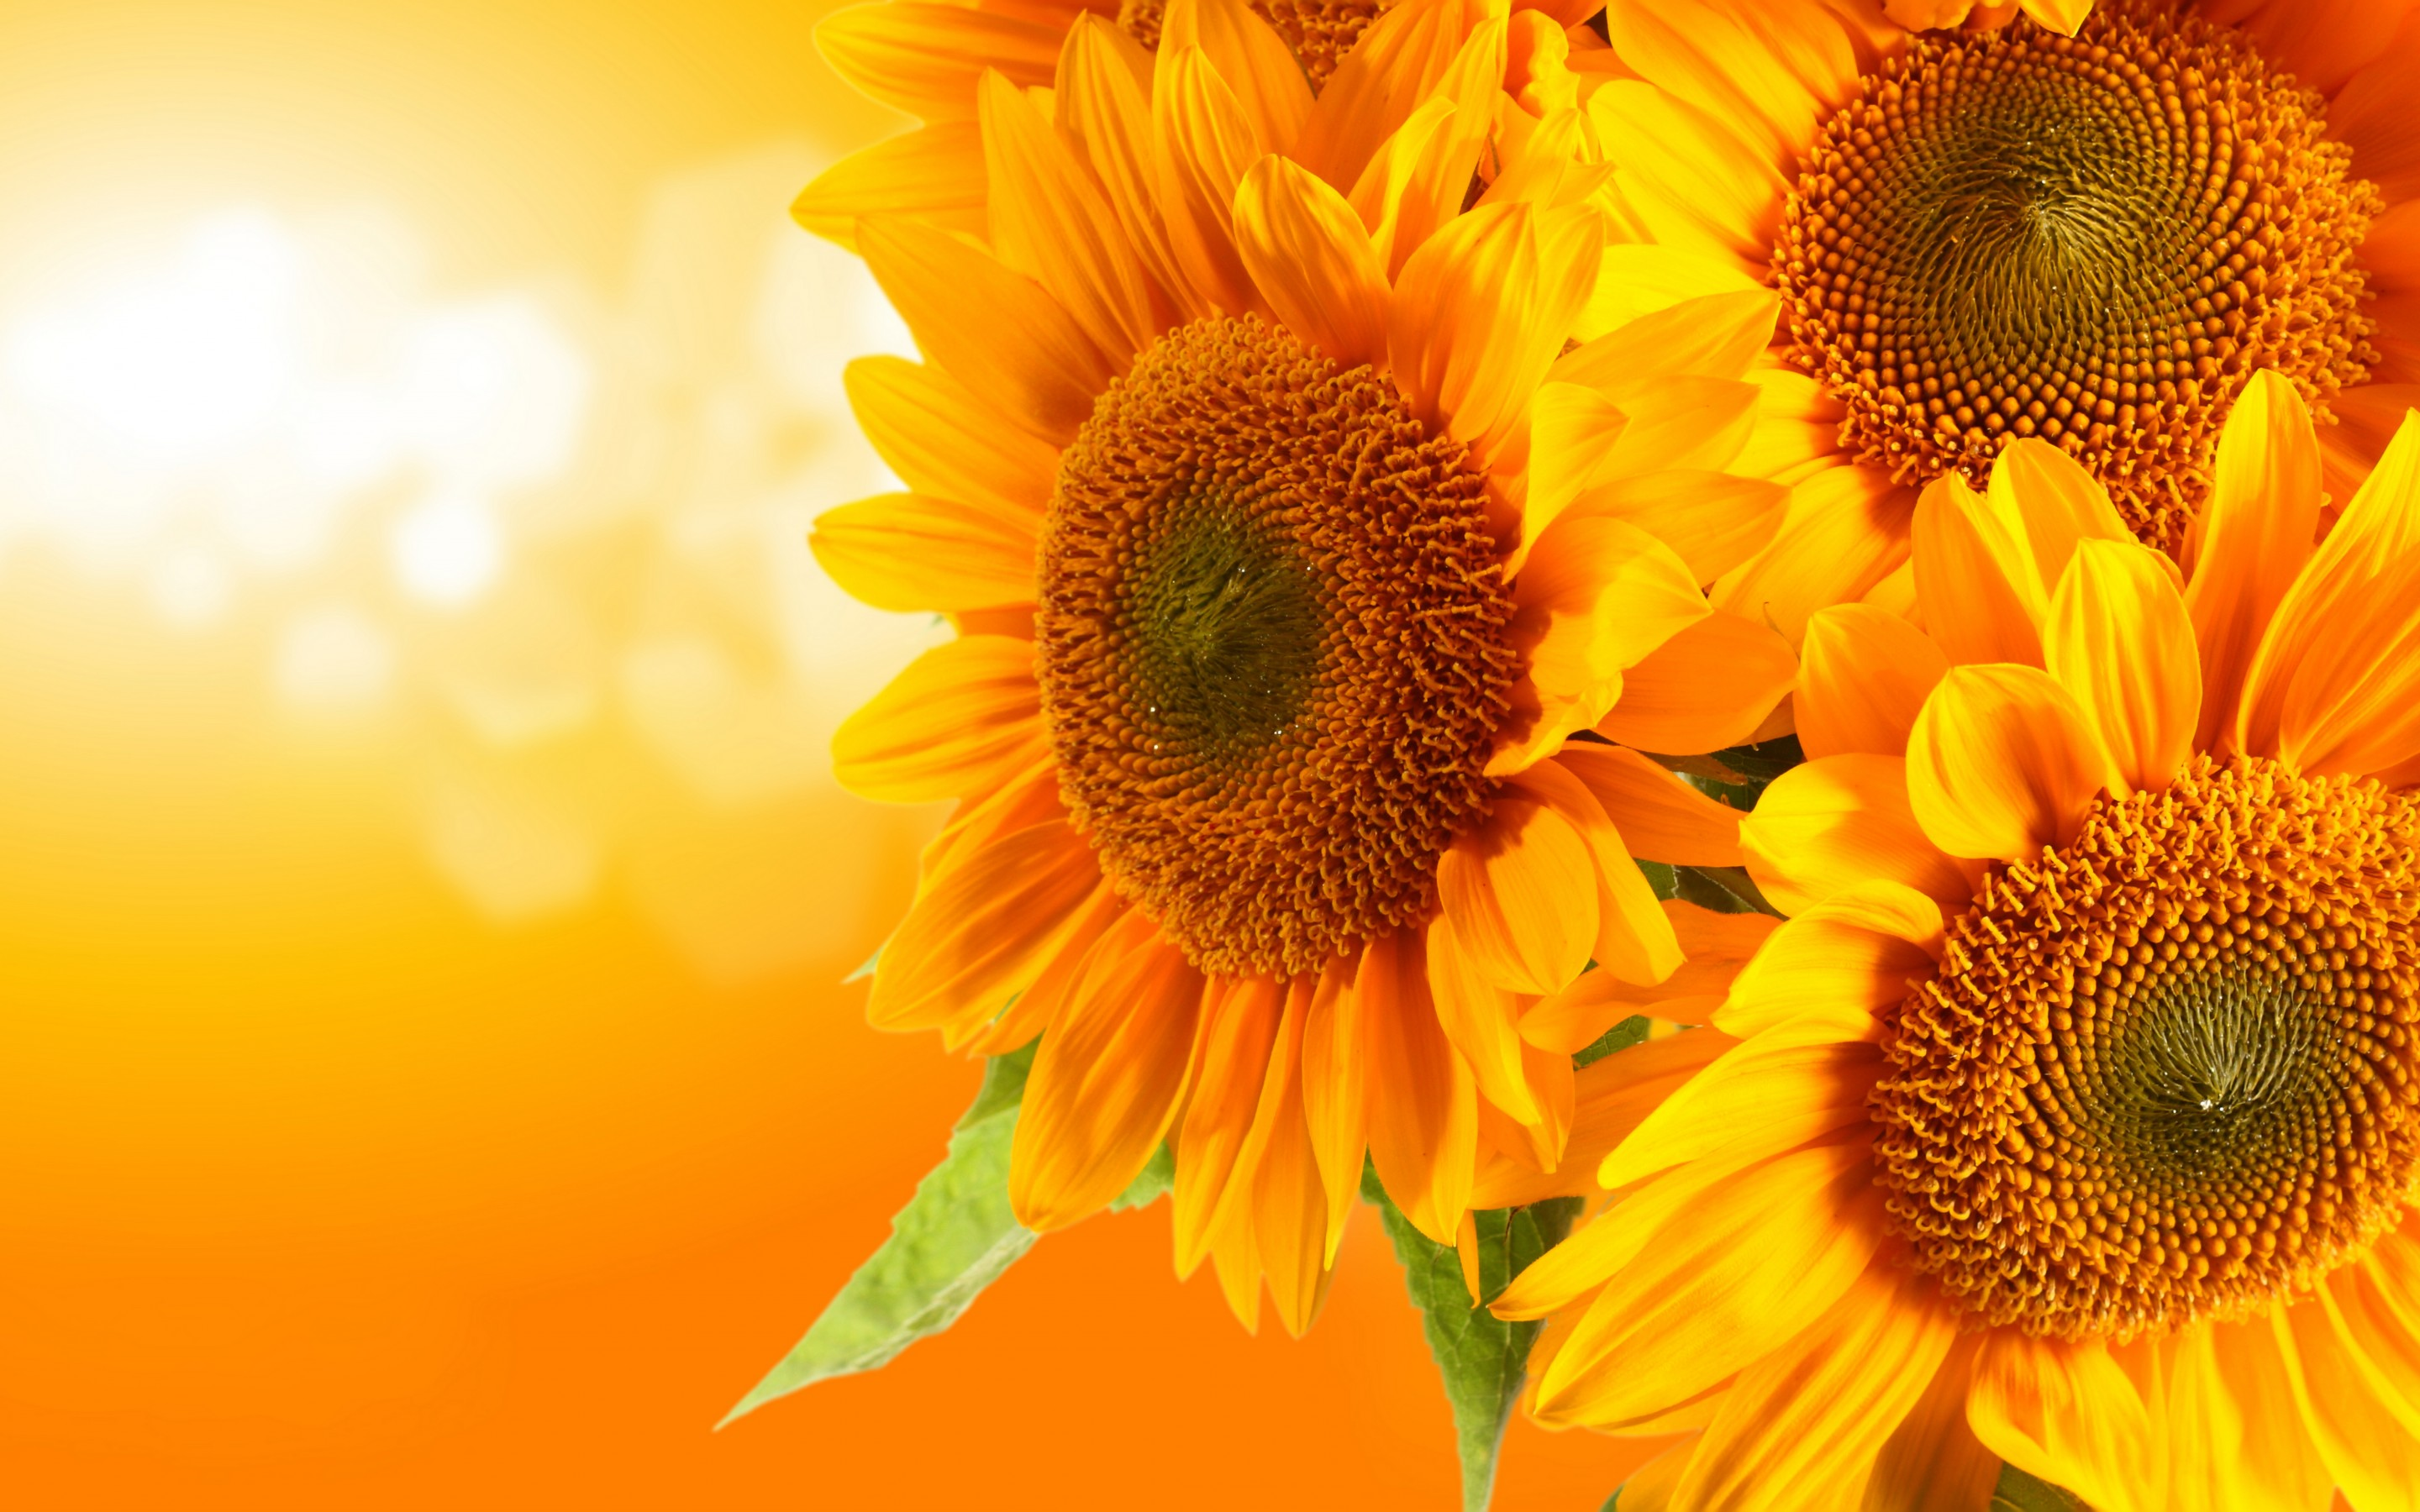 Sunflowers  Flowers Wallpaper 33340979  Fanpop